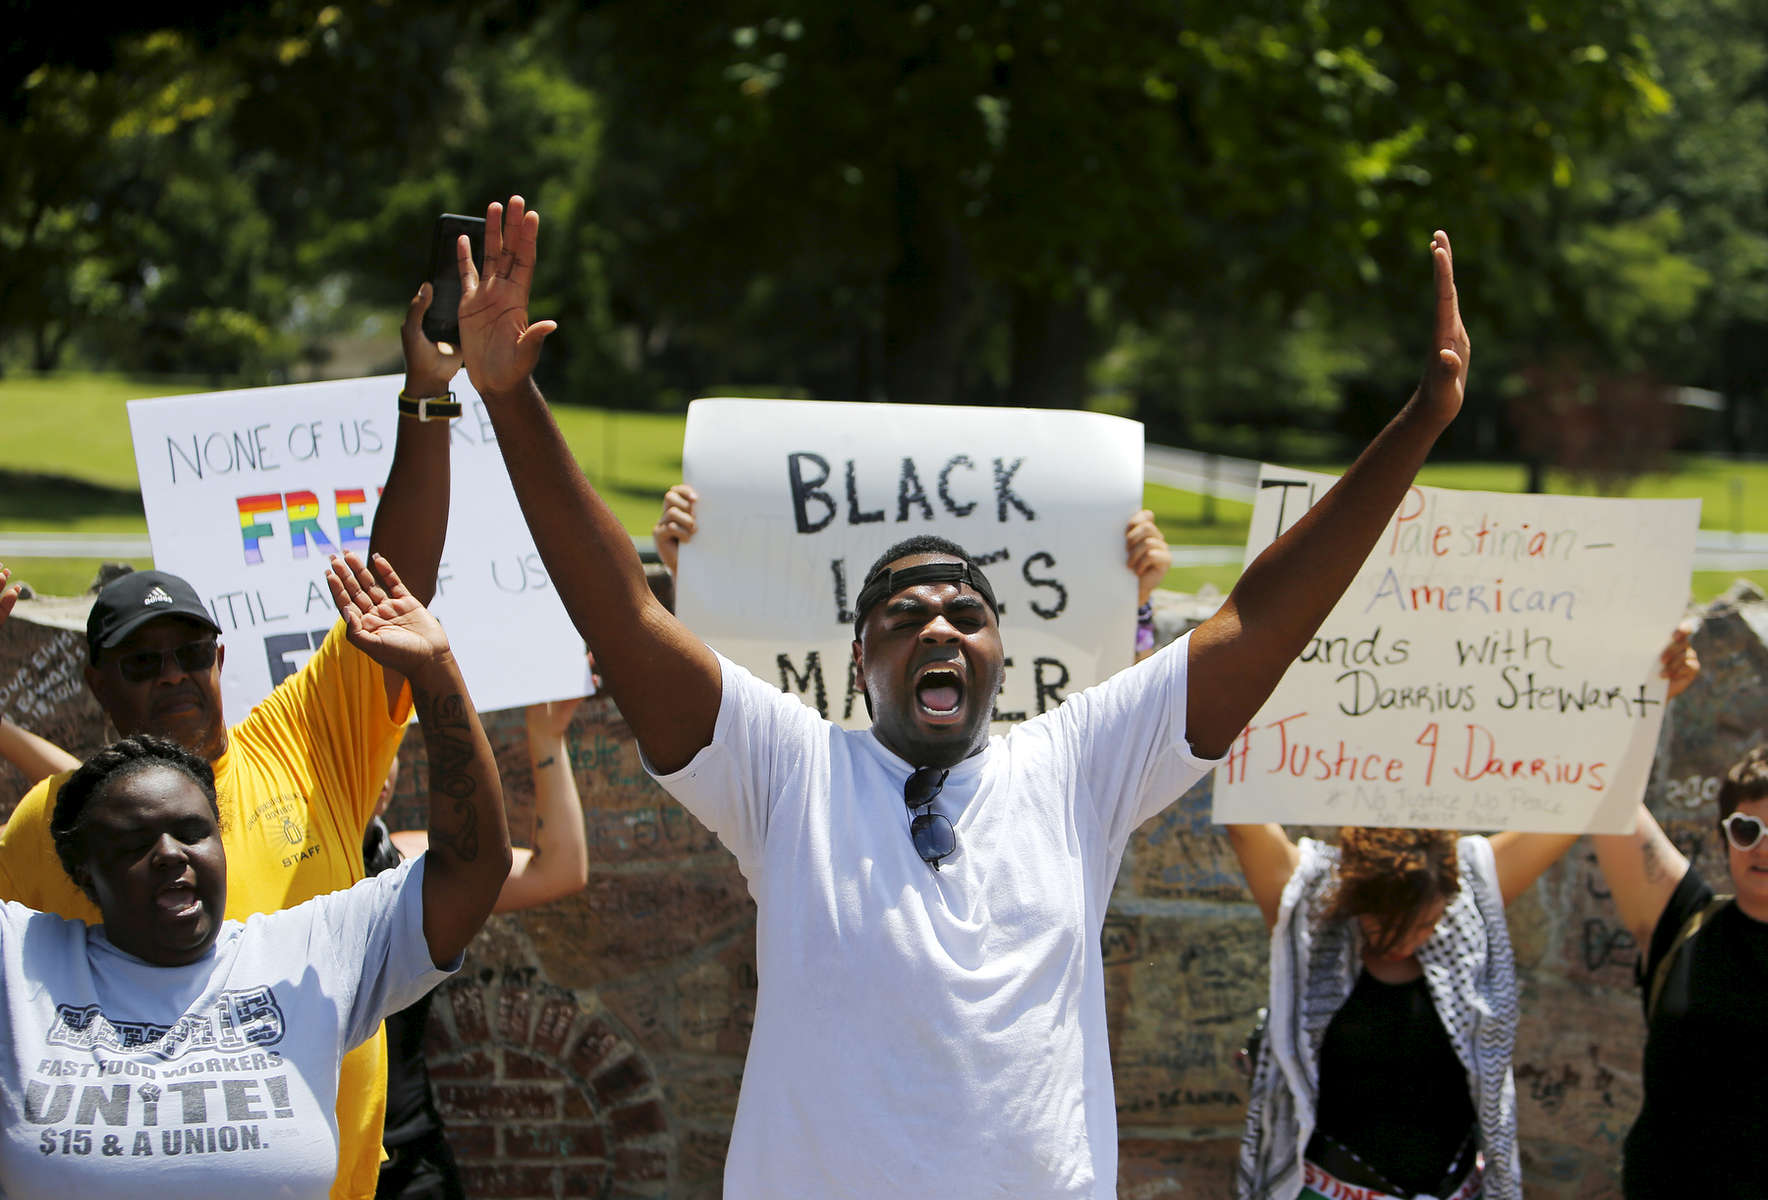 July 12, 2016 - Antonio Cathey (center) and others with the Black Lives Matter movement chant during a rally outside Graceland on Elvis Presley Blvd Tuesday afternoon. Roughly 60-70 people gathered peacefully outside the gates of the famous tourist destination. (Mike Brown/The Commercial Appeal)